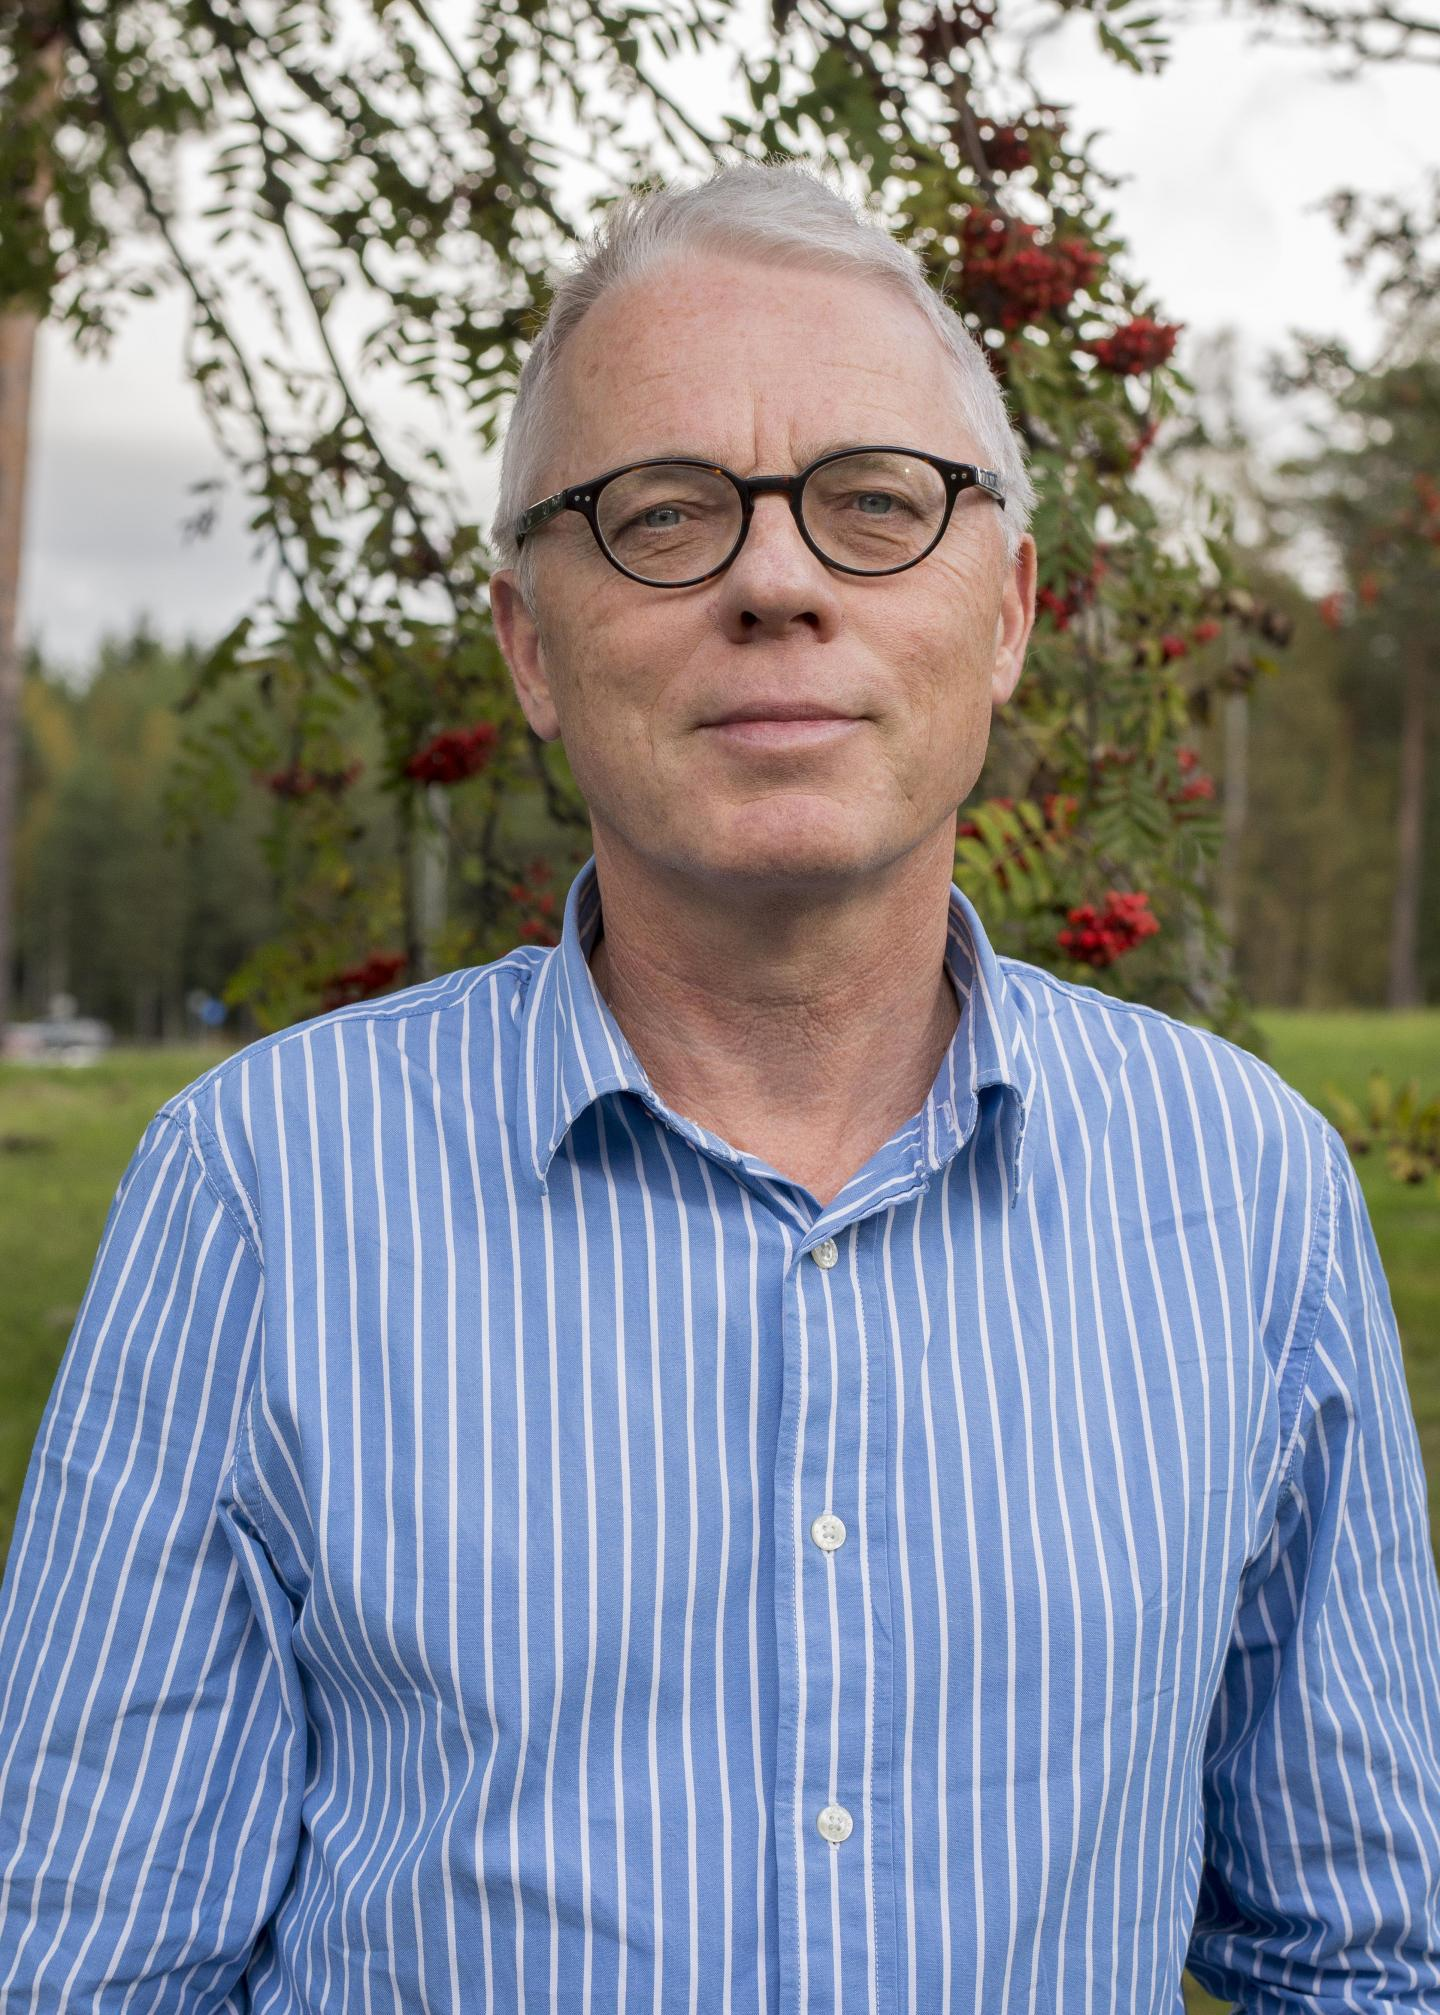 This is Mats Eliasson, professor at the Department of Public Health and Clinical Medicine as well as doctor at Sunderby Hospital in Luleå in northern Sweden.